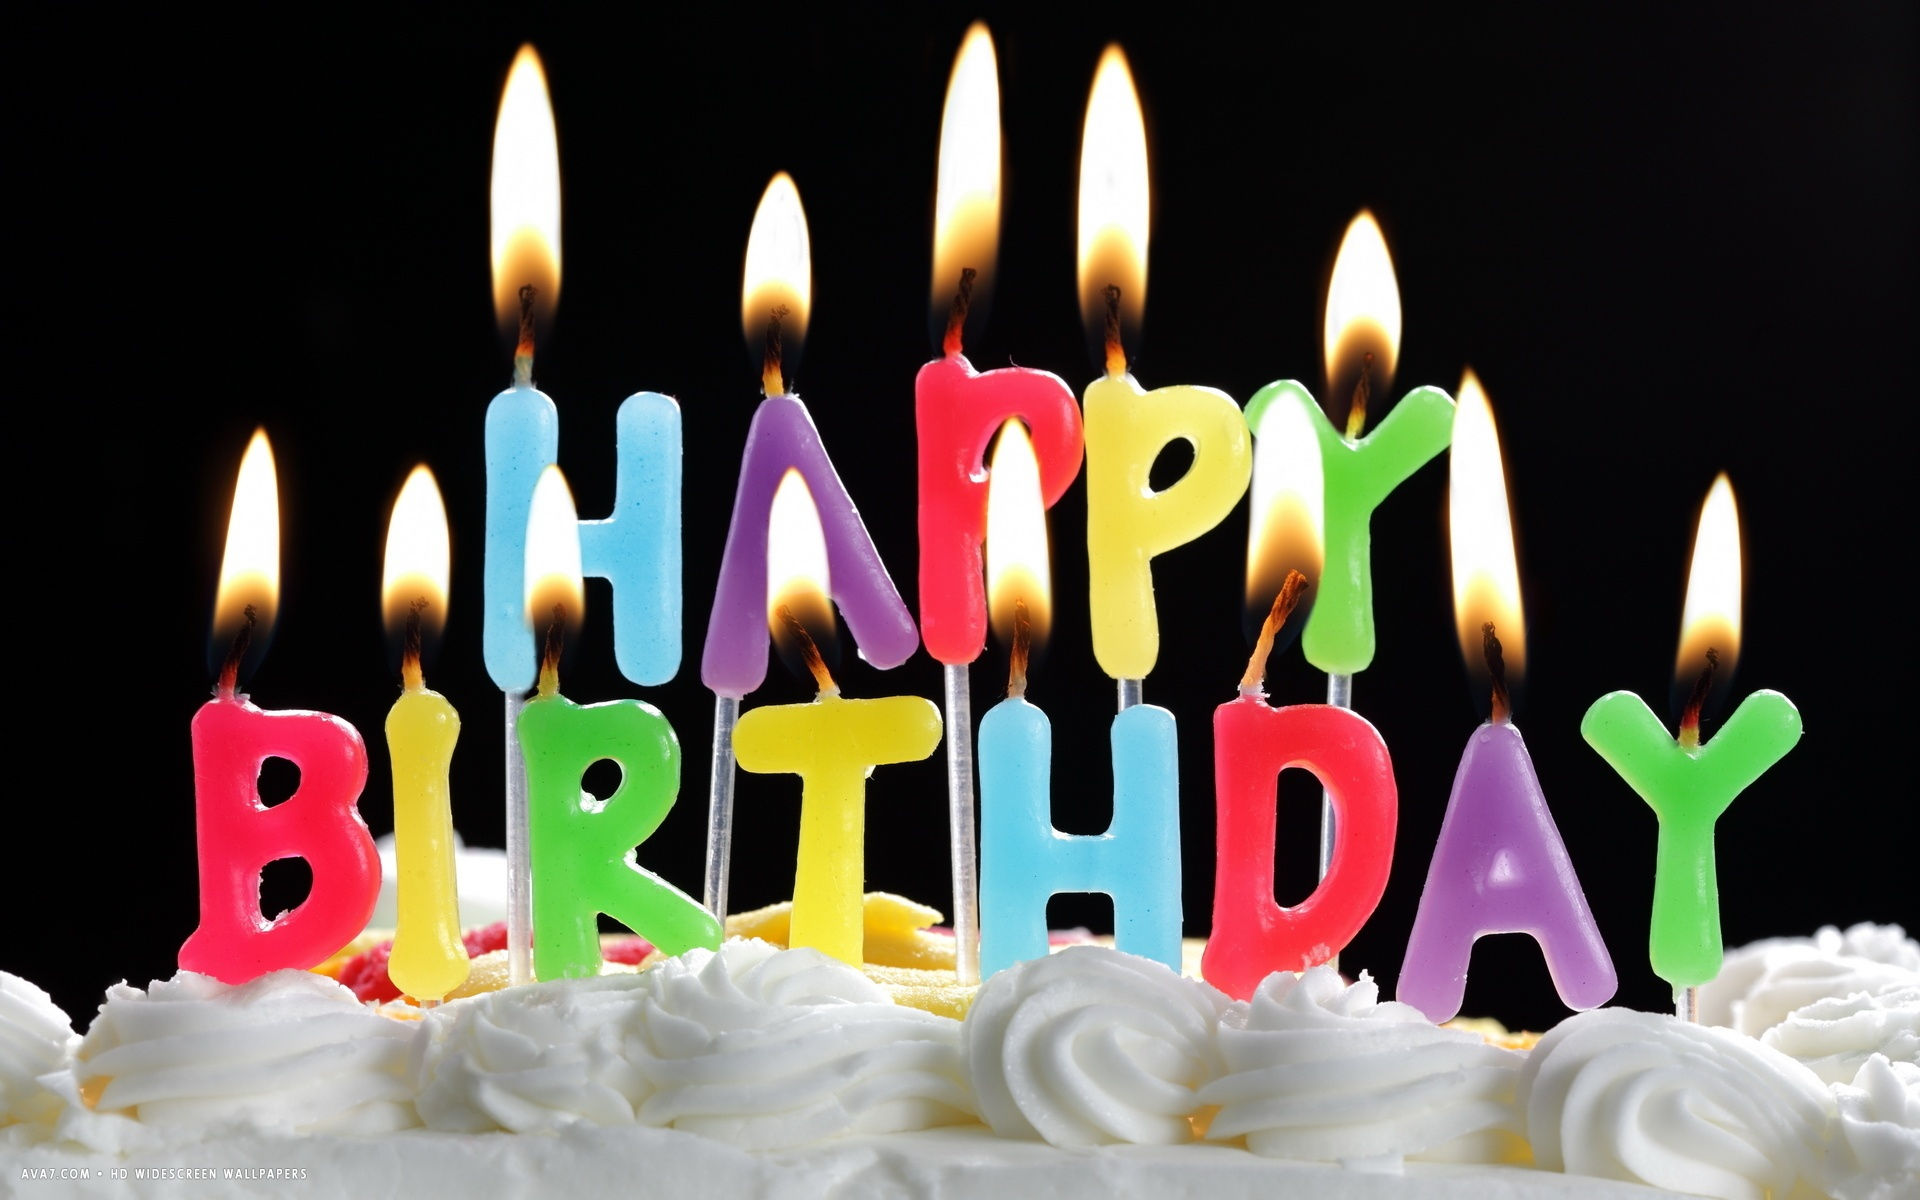 Happy birthday colorful letter candles white cake hd widescreen happy birthday colorful letter candles white cake hd widescreen wallpaper altavistaventures Image collections